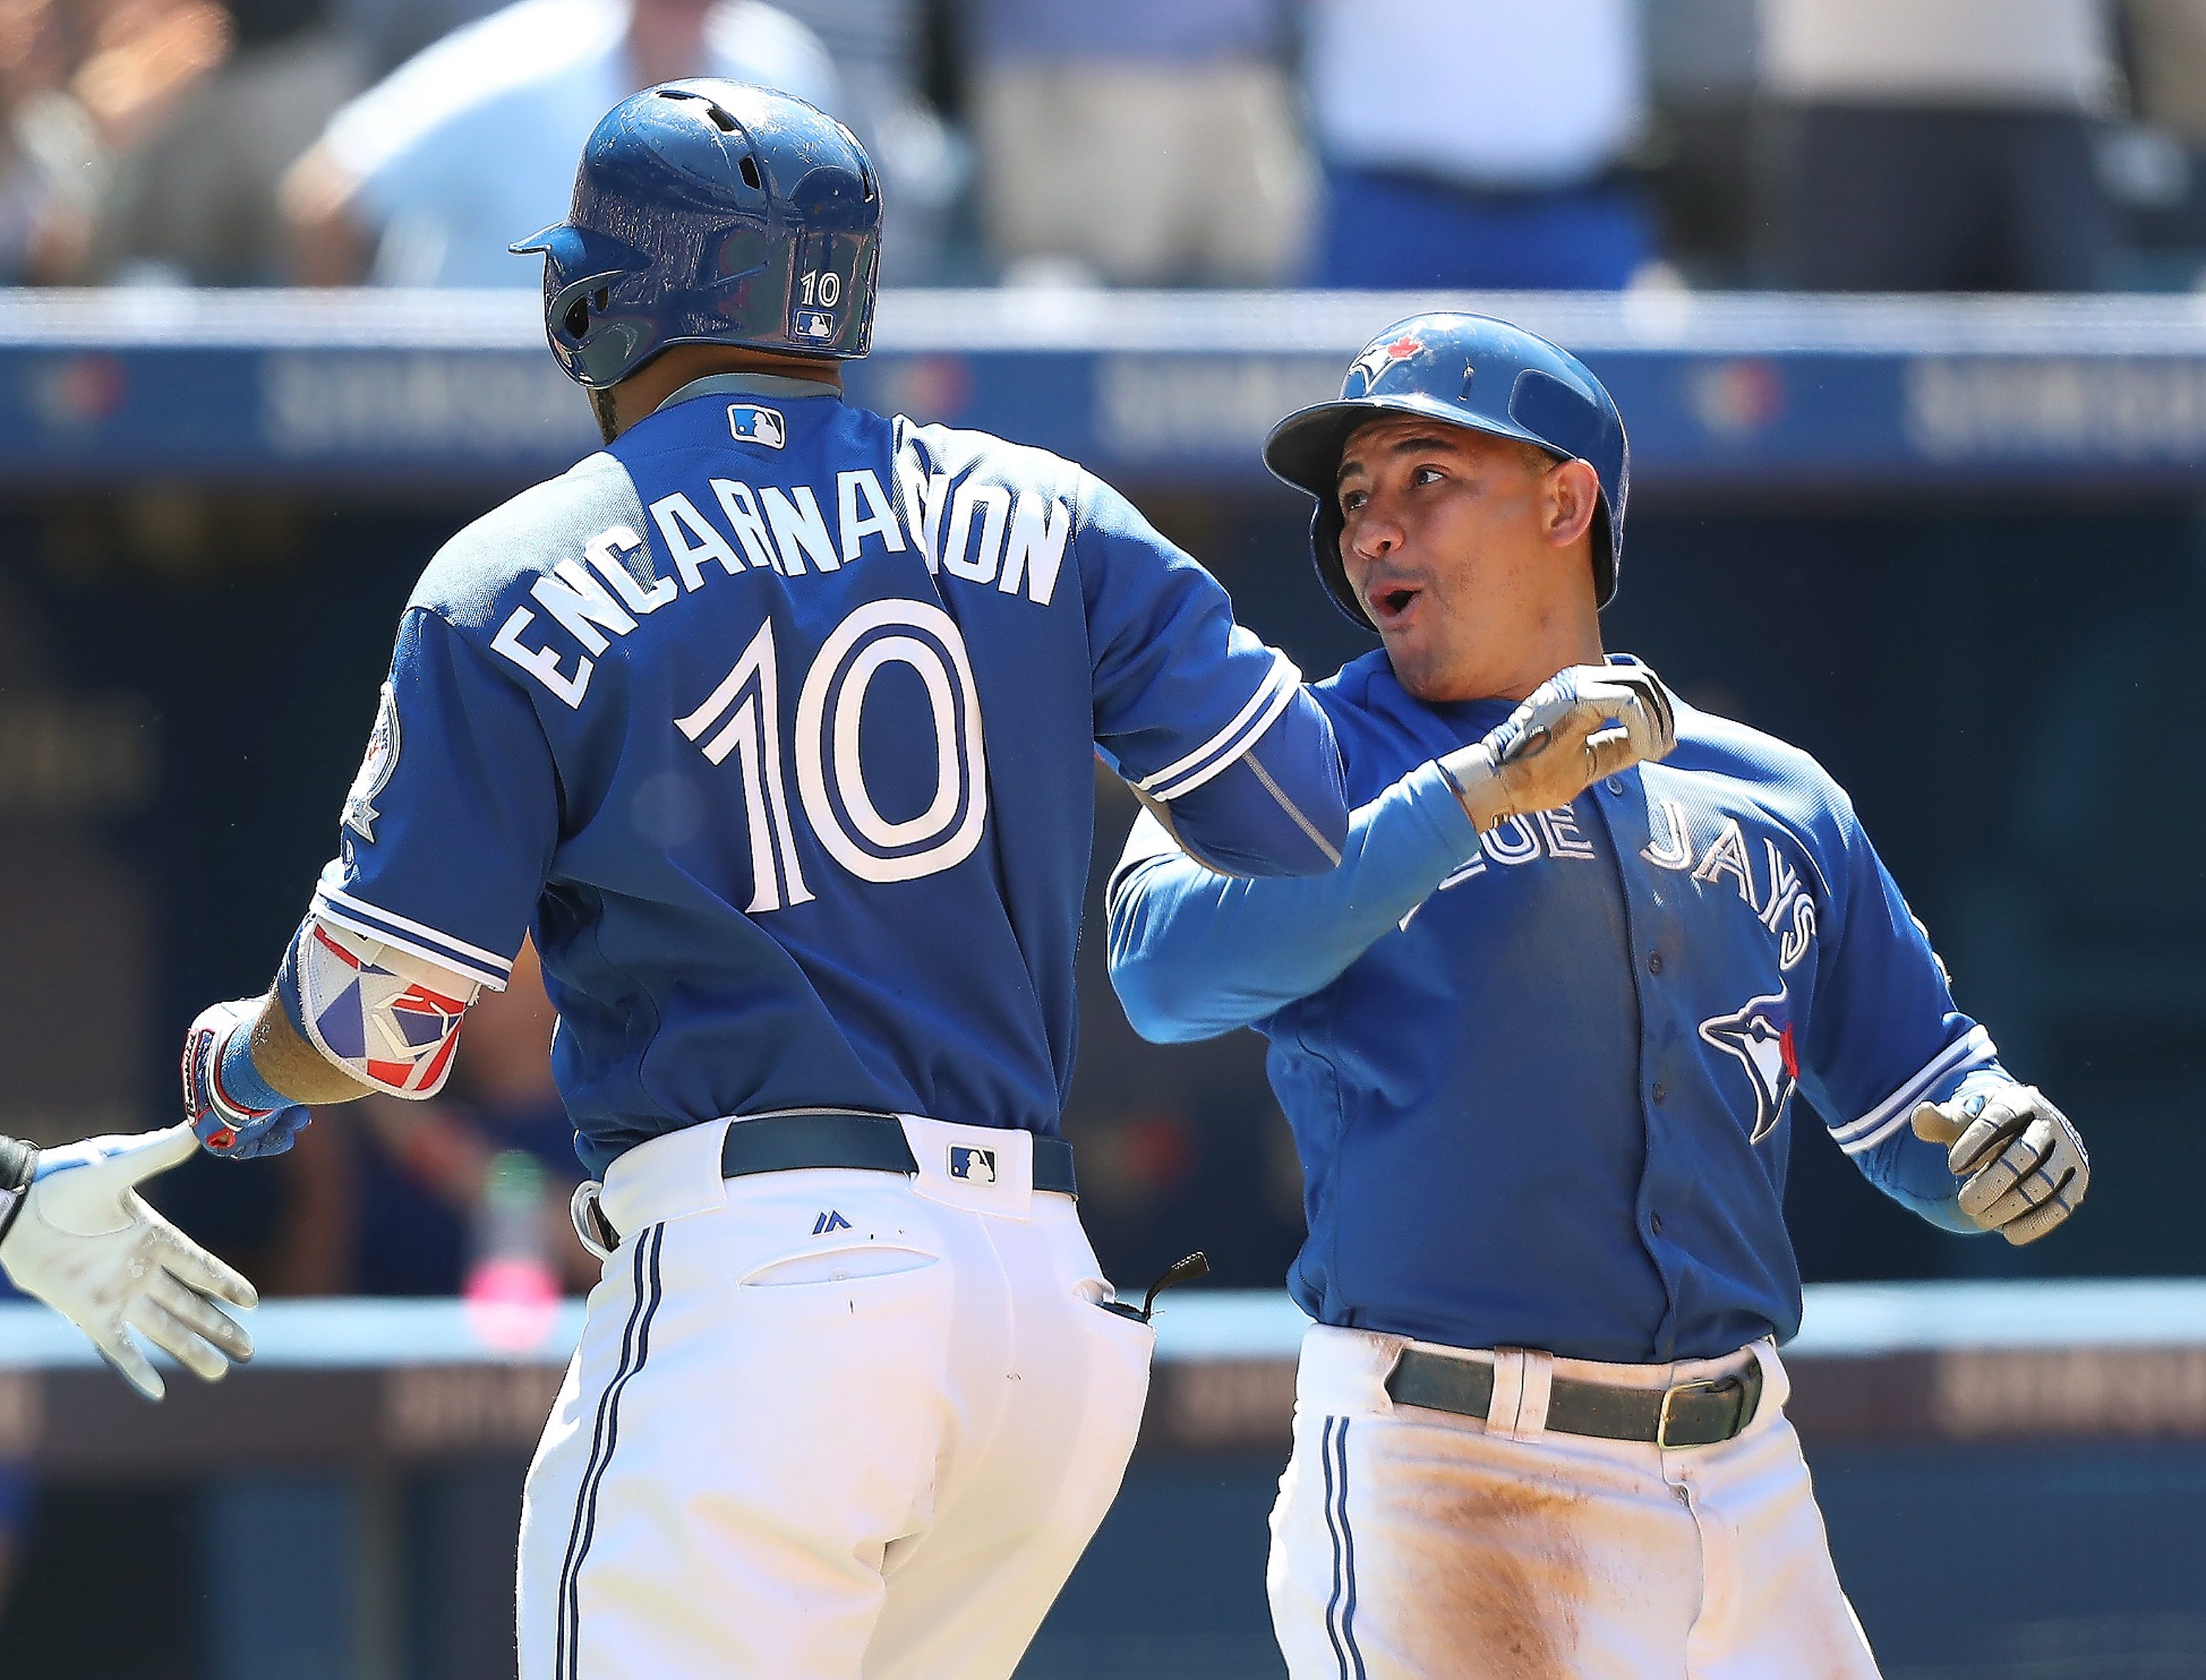 Toronto Blue Jays' Edwin Encarnacion, left, is greeted by teammate Ezequiel Carrera after hitting a three-run home run in the sixth inning of a baseball game against the Baltimore Orioles in Toronto, Saturday, June 11, 2016. (Fred Thornhill/The Canadian P